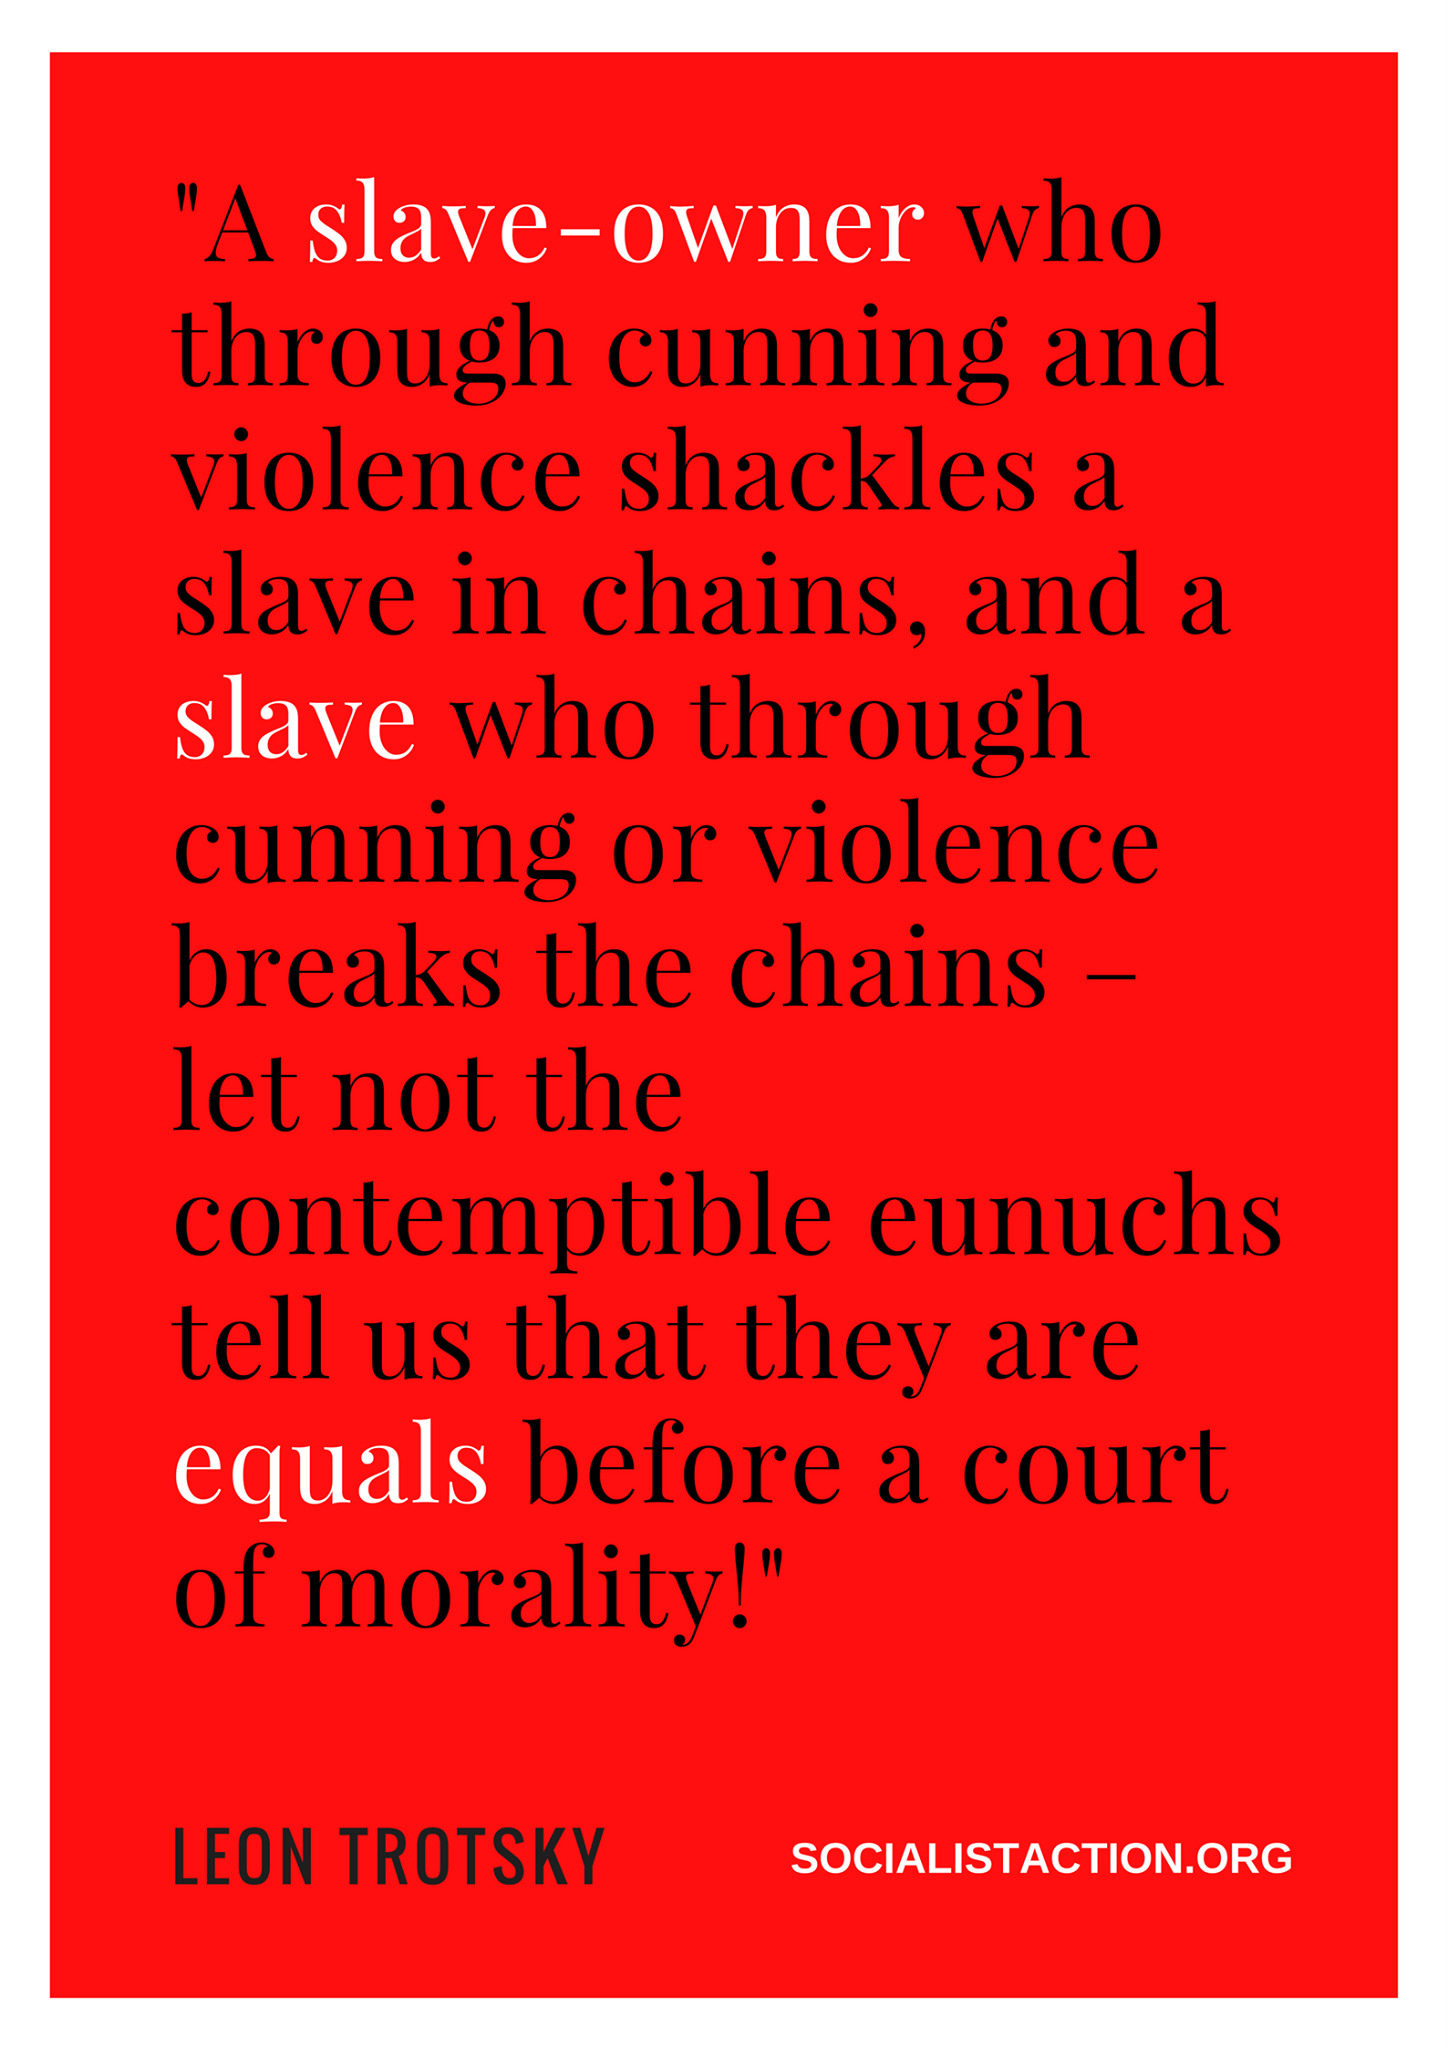 """let not the contemptible eunuchs tell us that they are equals before a court of morality!"" — Leon Trotsky (1448 x 2048)"